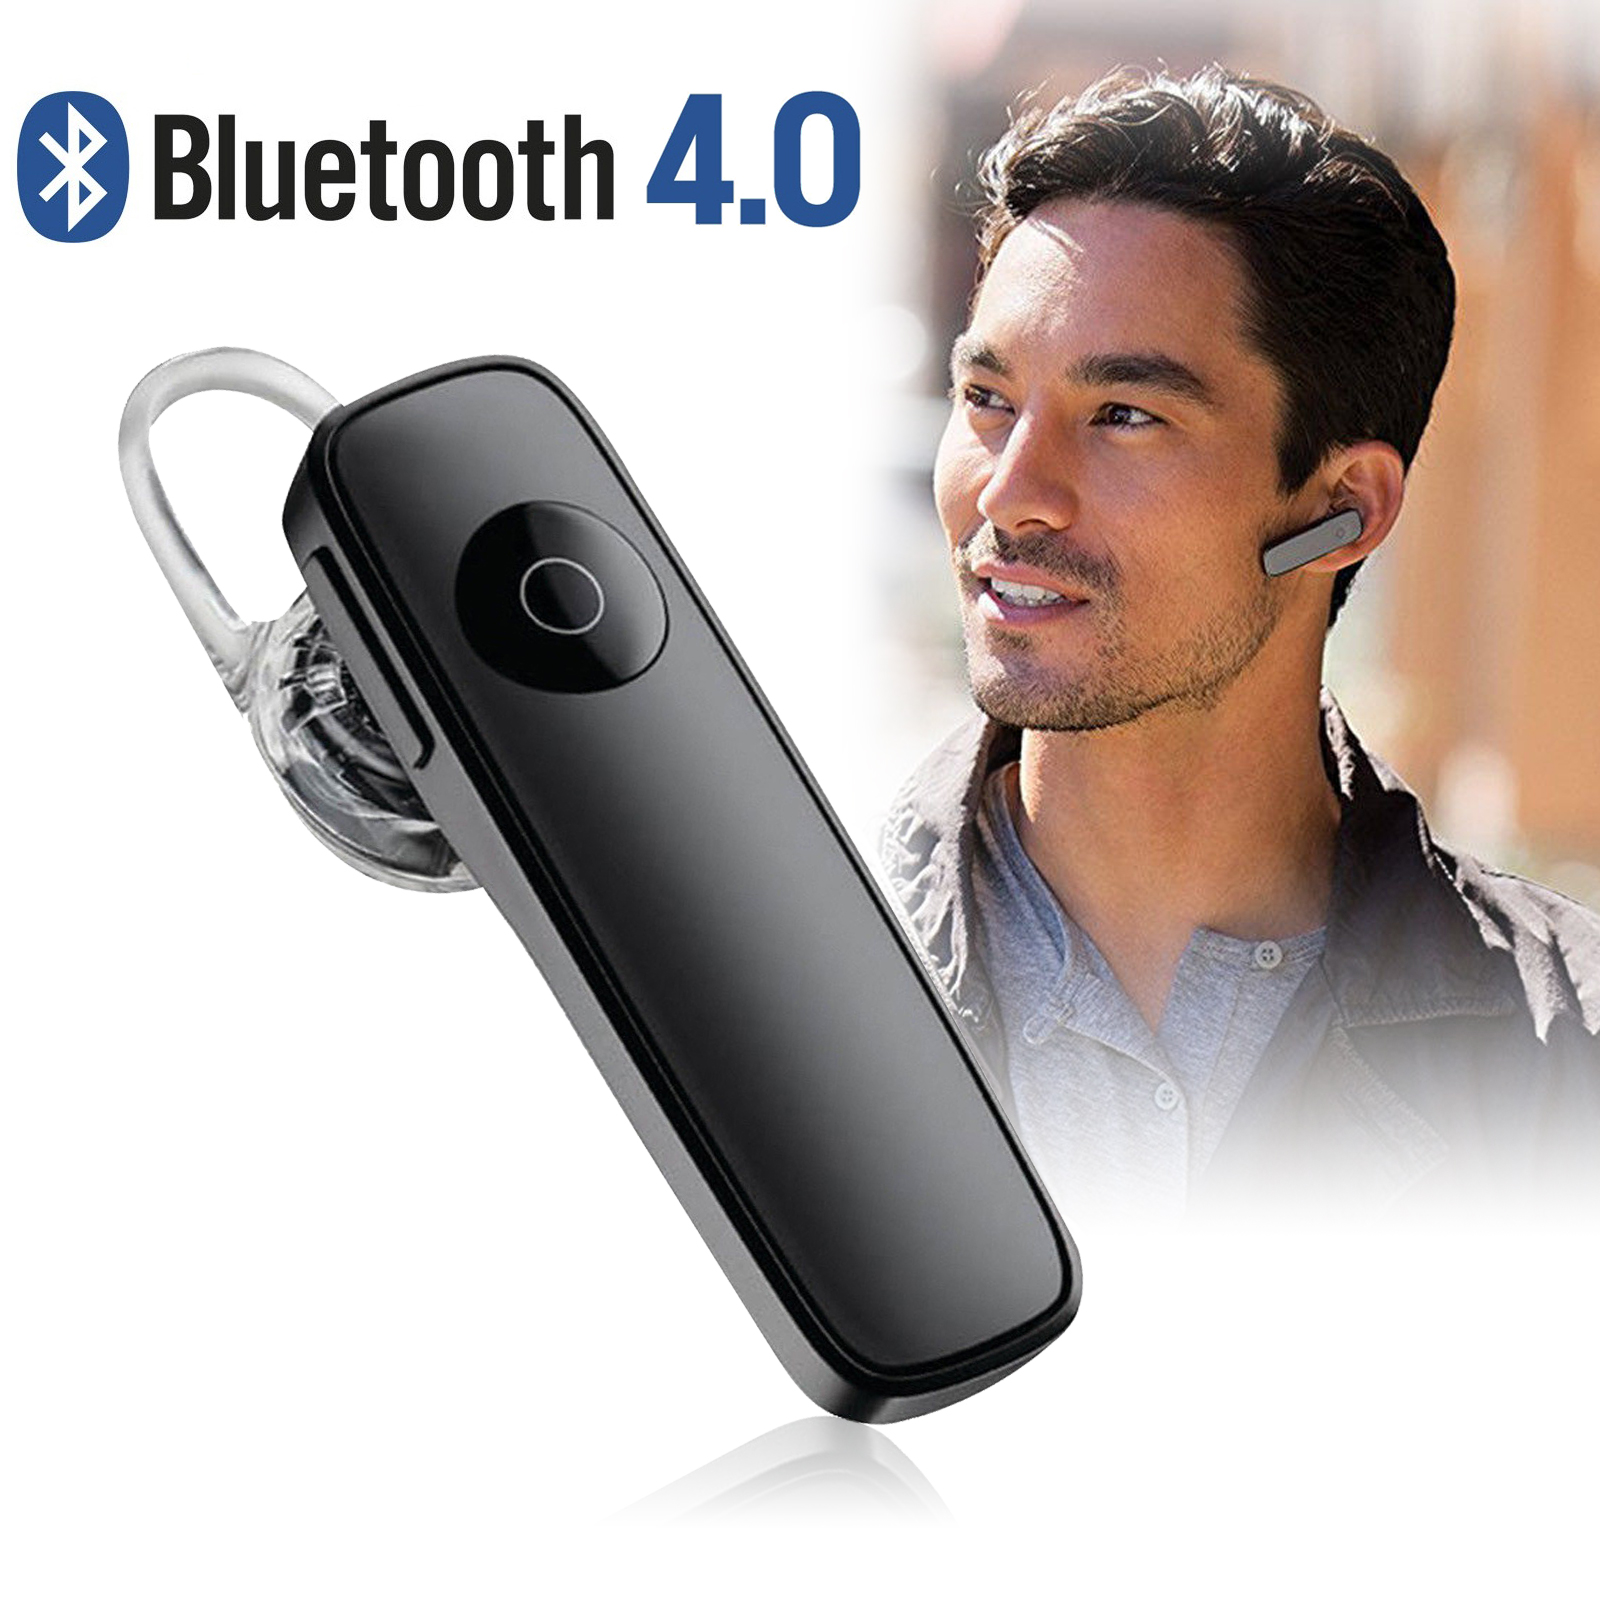 Bluetooth Headset, Wireless Earpiece Bluetooth 4.0 for Cell Phones, In-Ear Piece Hands Free Earbuds Headphone w/ Mic, Noise Cancelling for Driving, Compatible w/ iPhone Samsung Cellphone